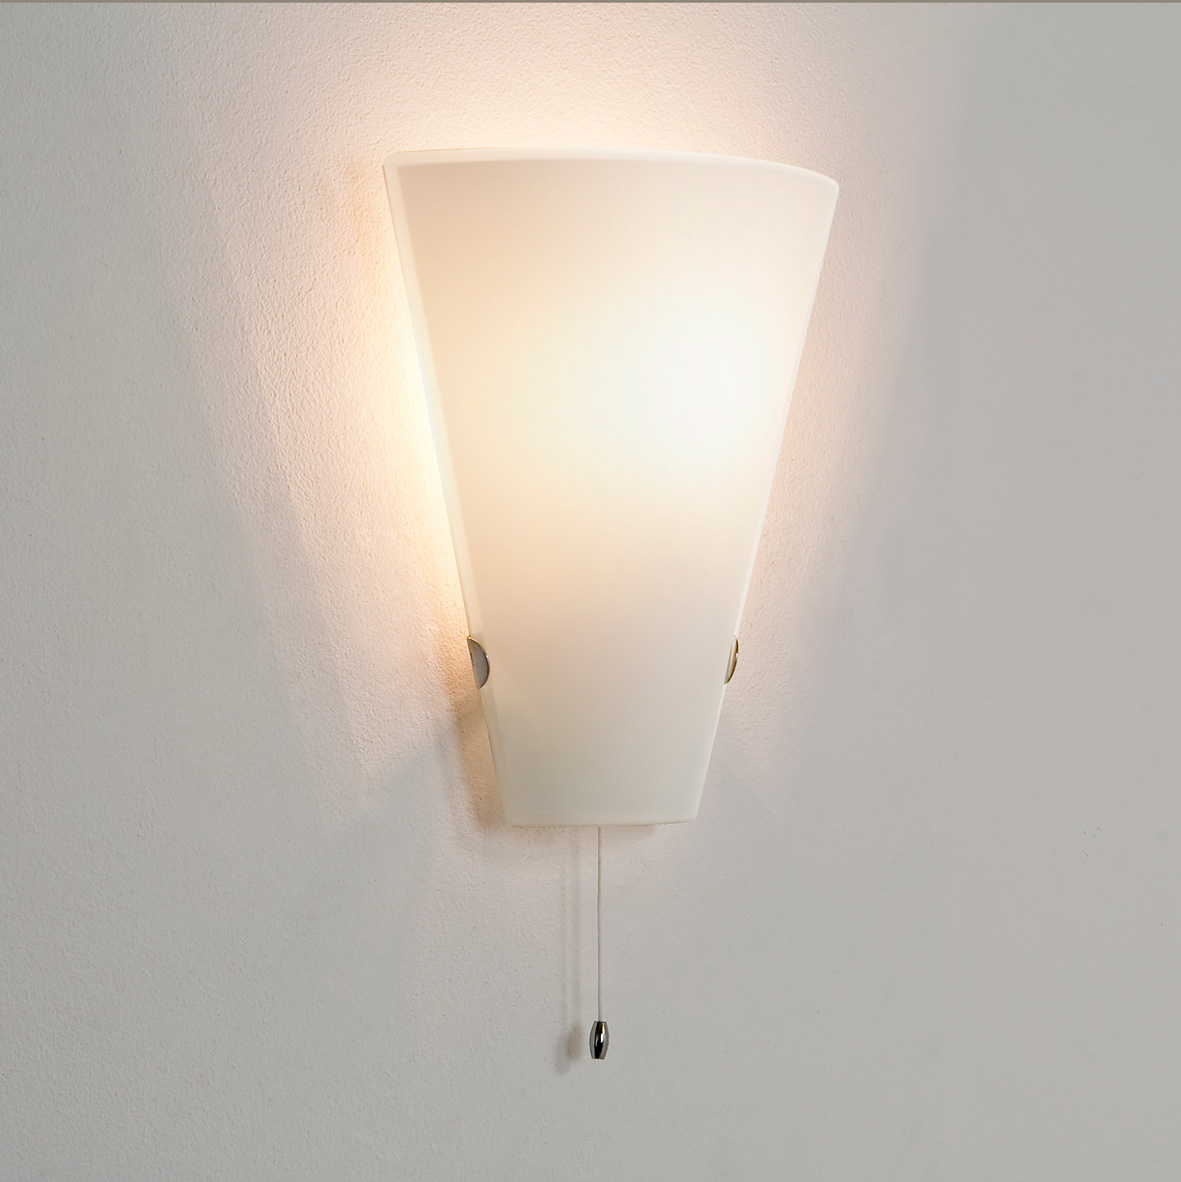 10 Things To Know About Wall Lights Pull Cord Warisan